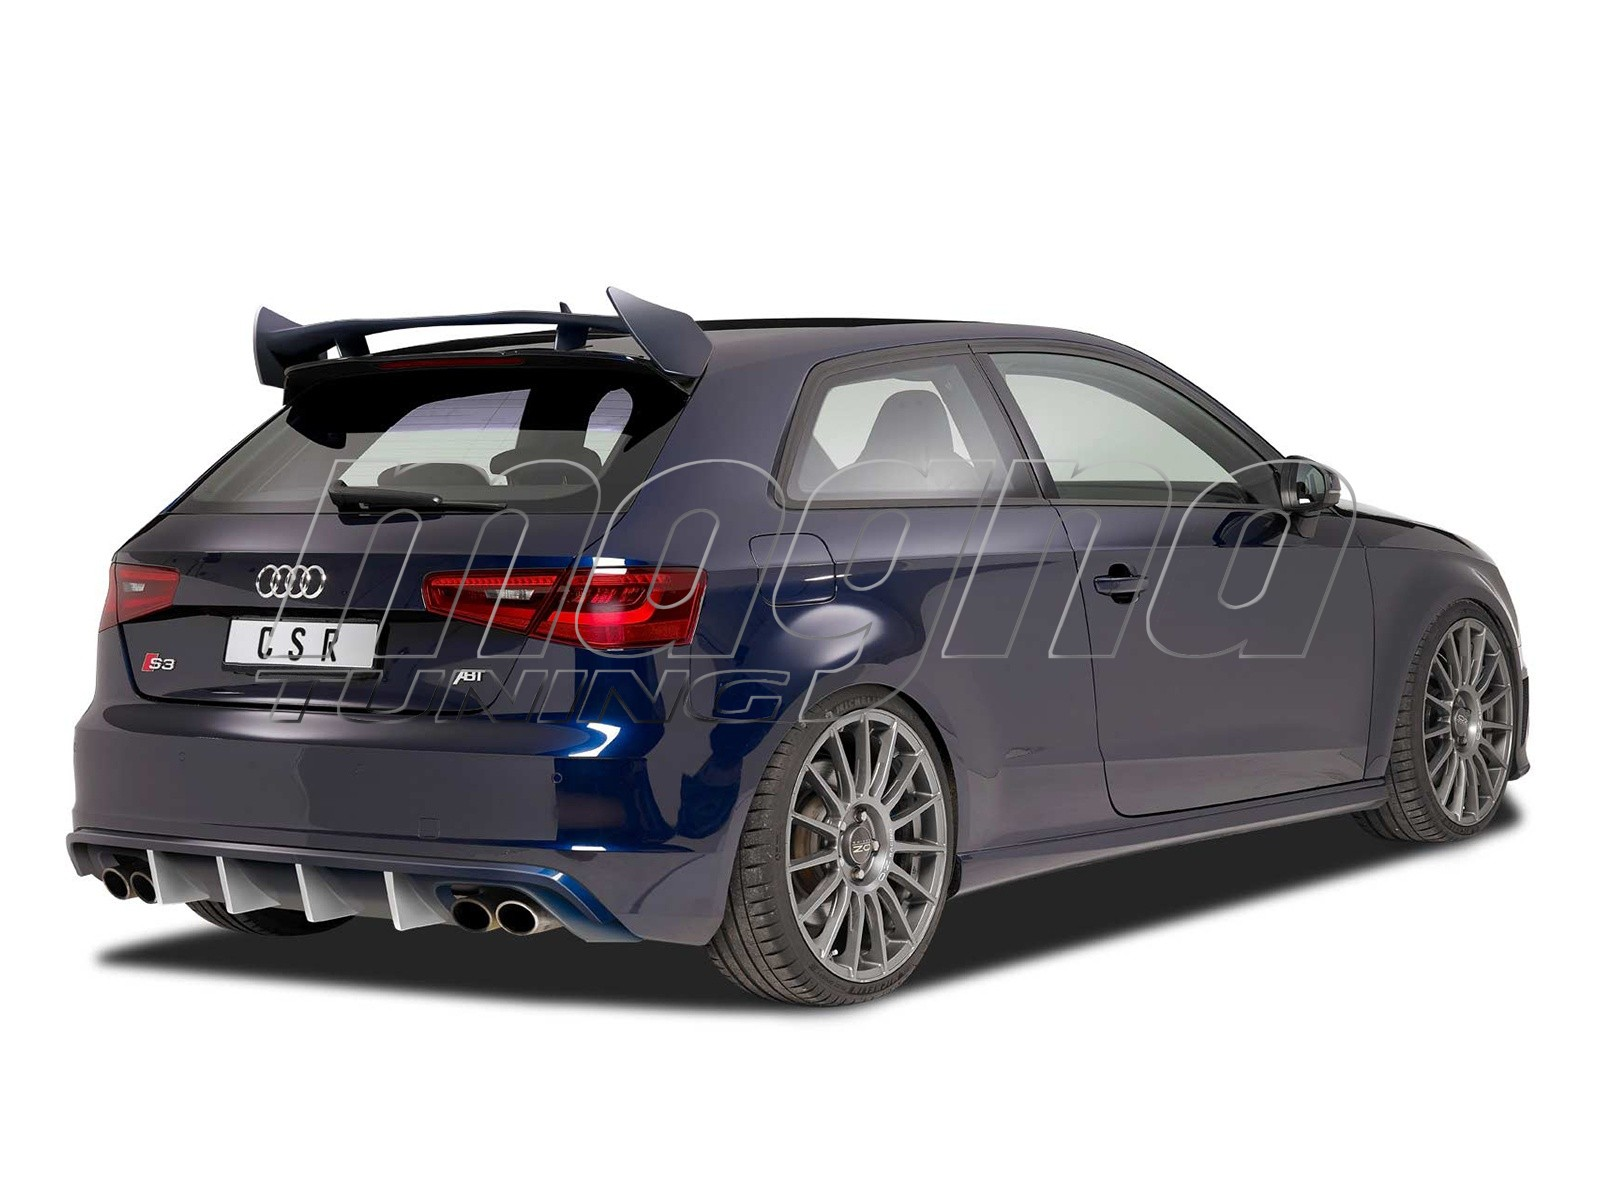 audi a3 8v cx rear wing. Black Bedroom Furniture Sets. Home Design Ideas